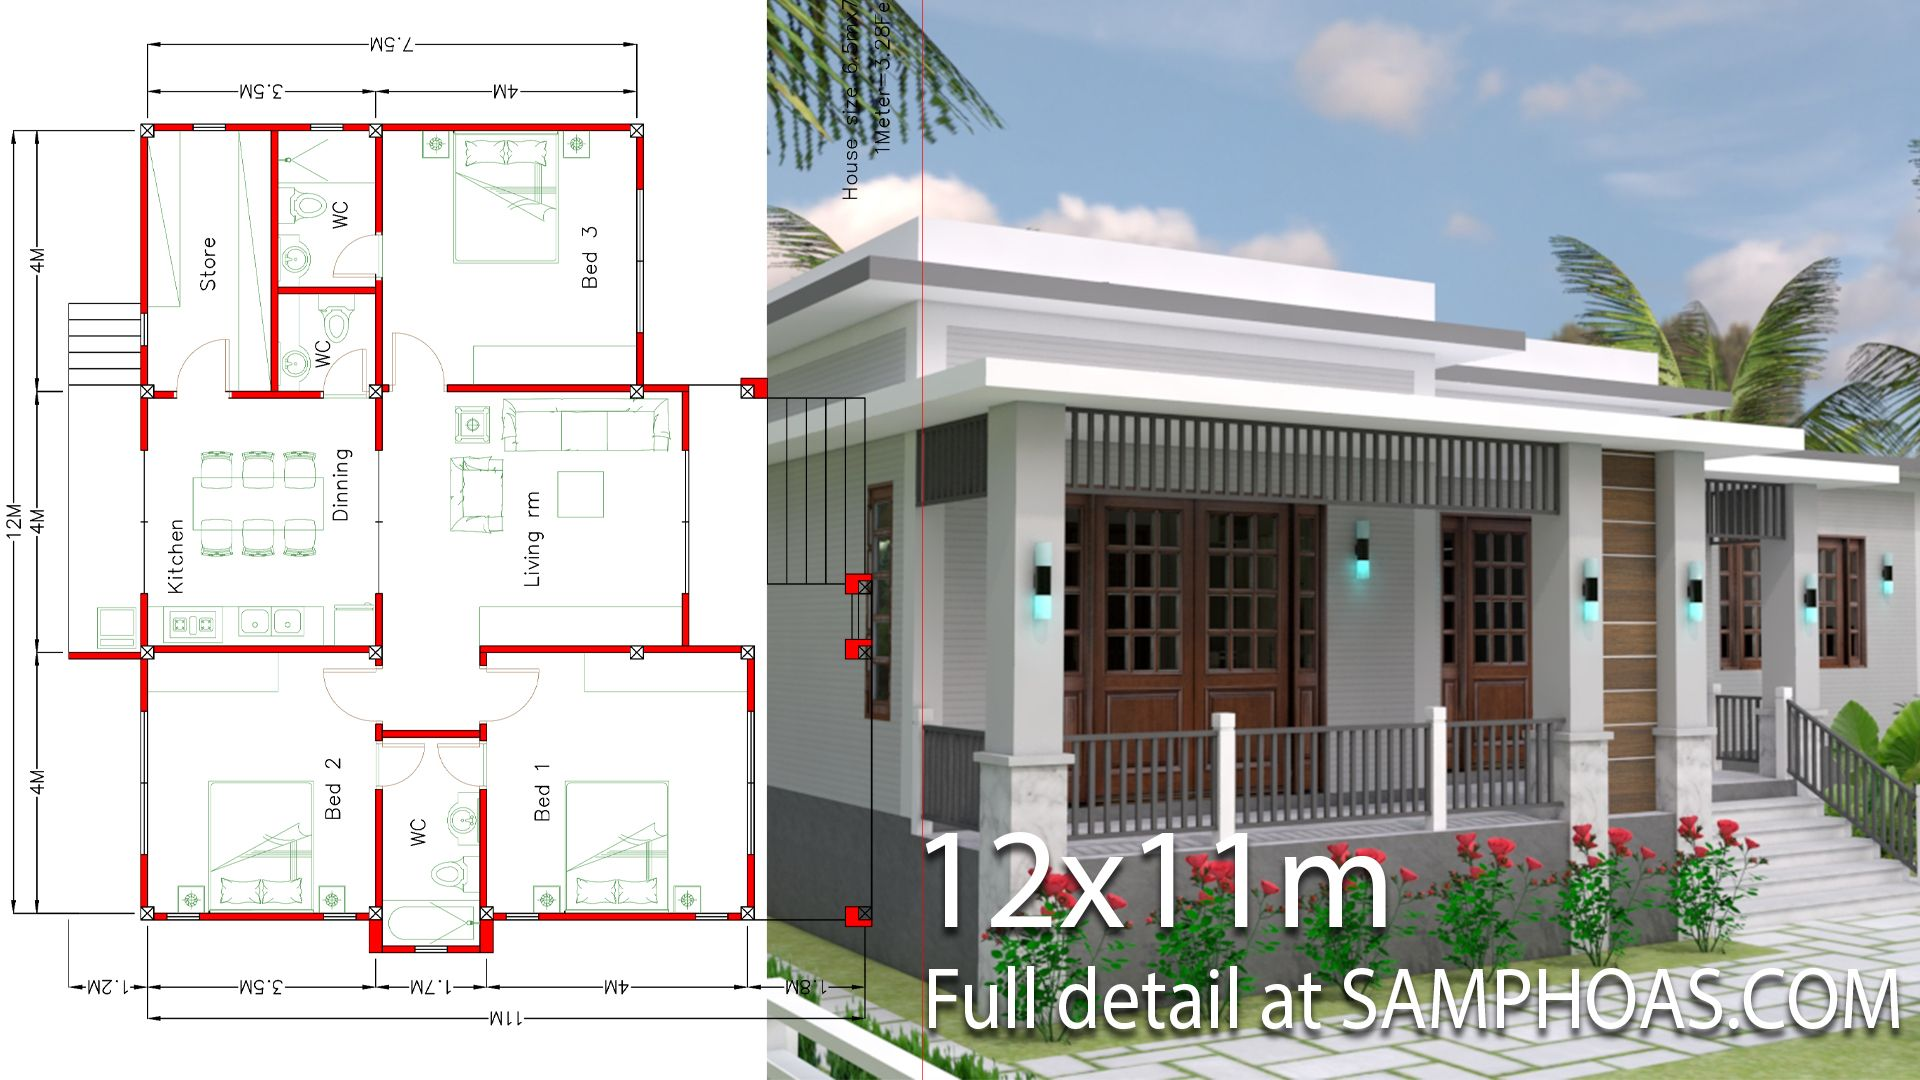 House Plans 12x11m With 3 Bedrooms House Plans Free Downloads Simple House Design Beautiful House Plans House Plan Gallery